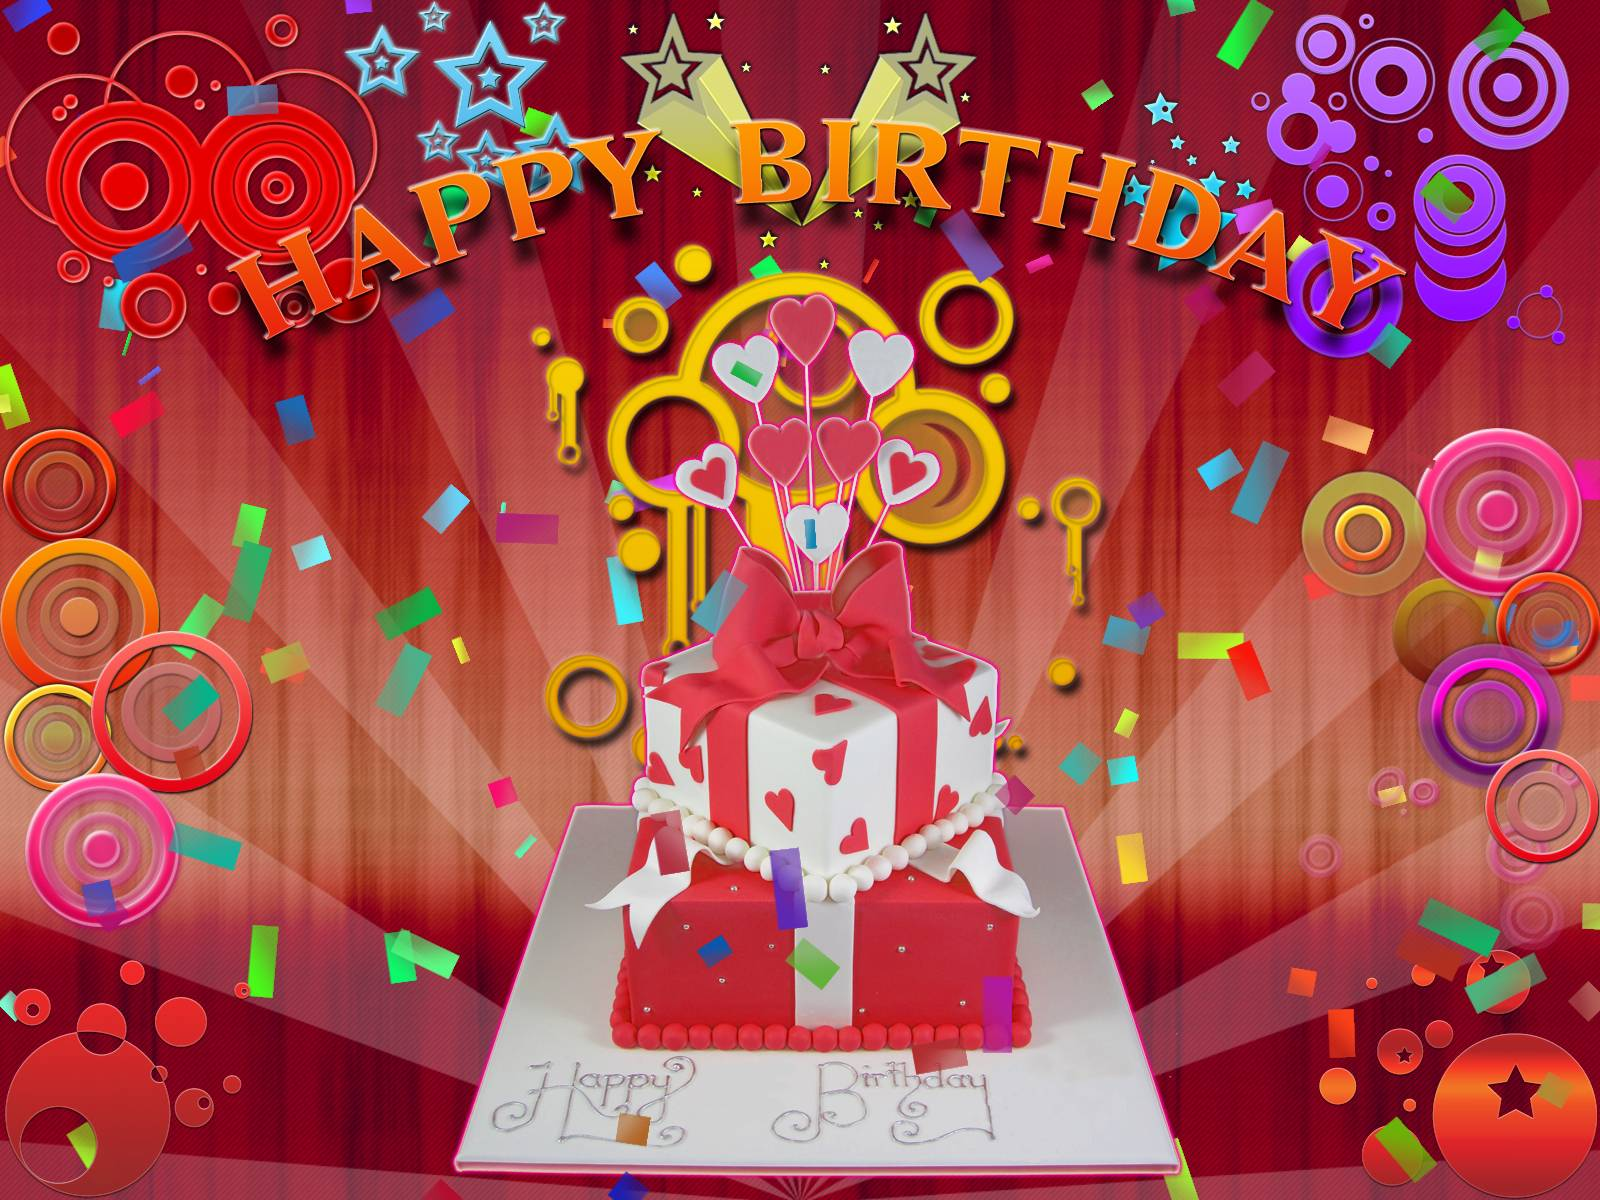 Happy B Day Wallpaper Download